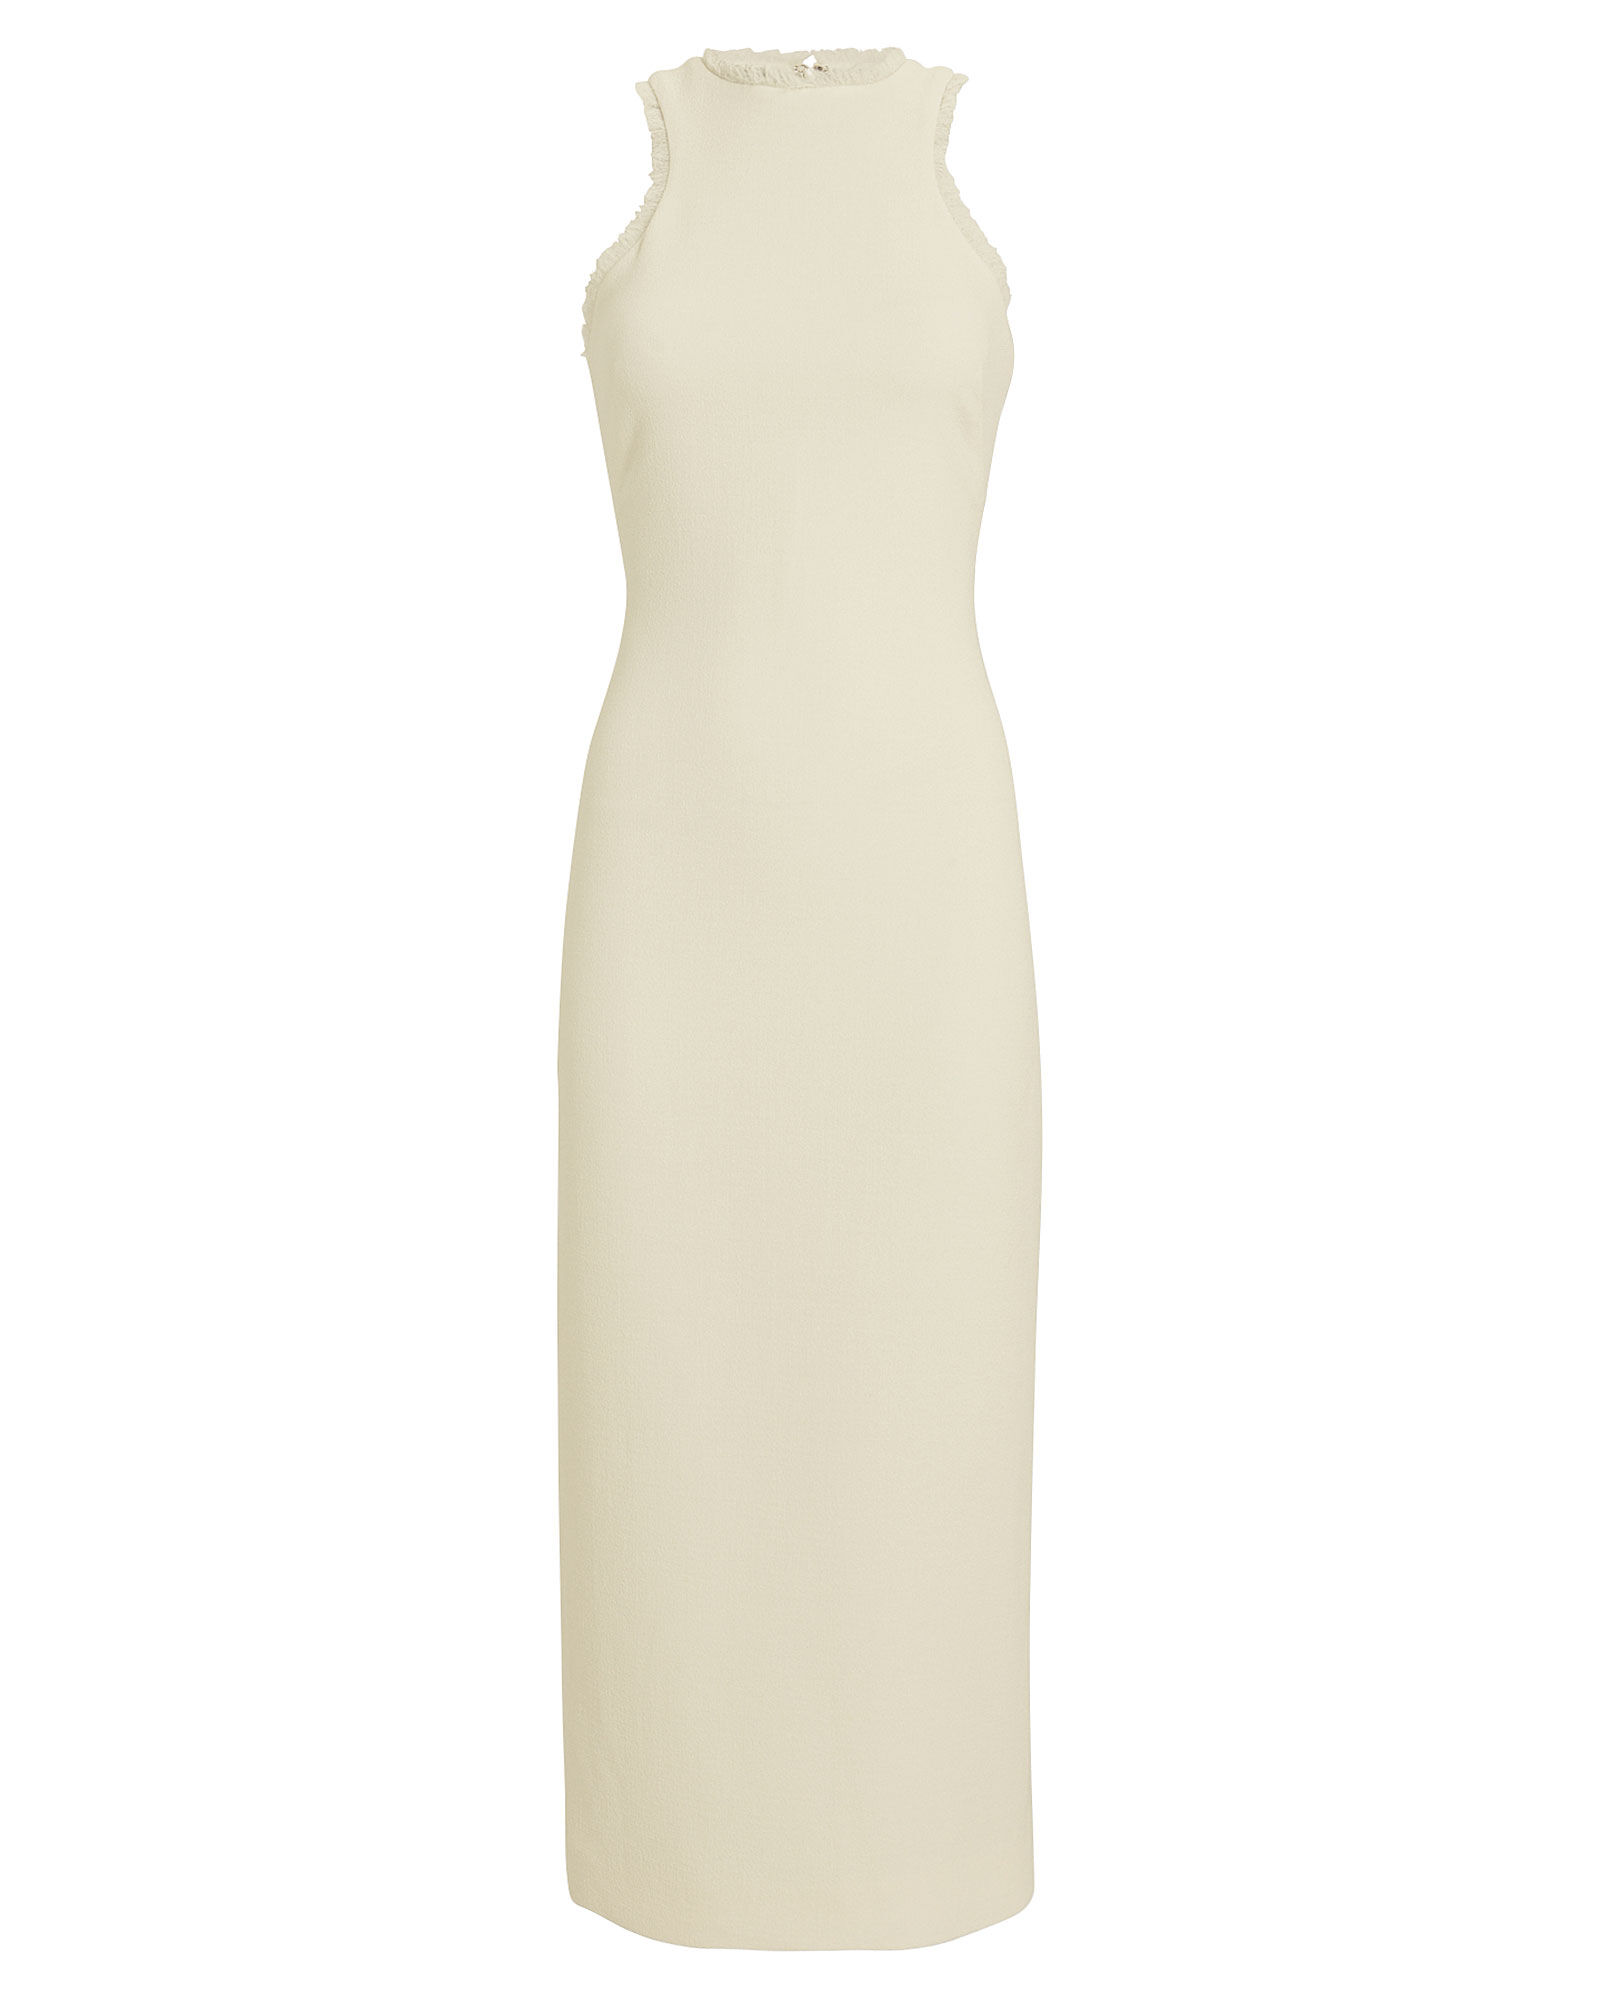 Wool Crepe Fringe-Trimmed Dress, IVORY, hi-res